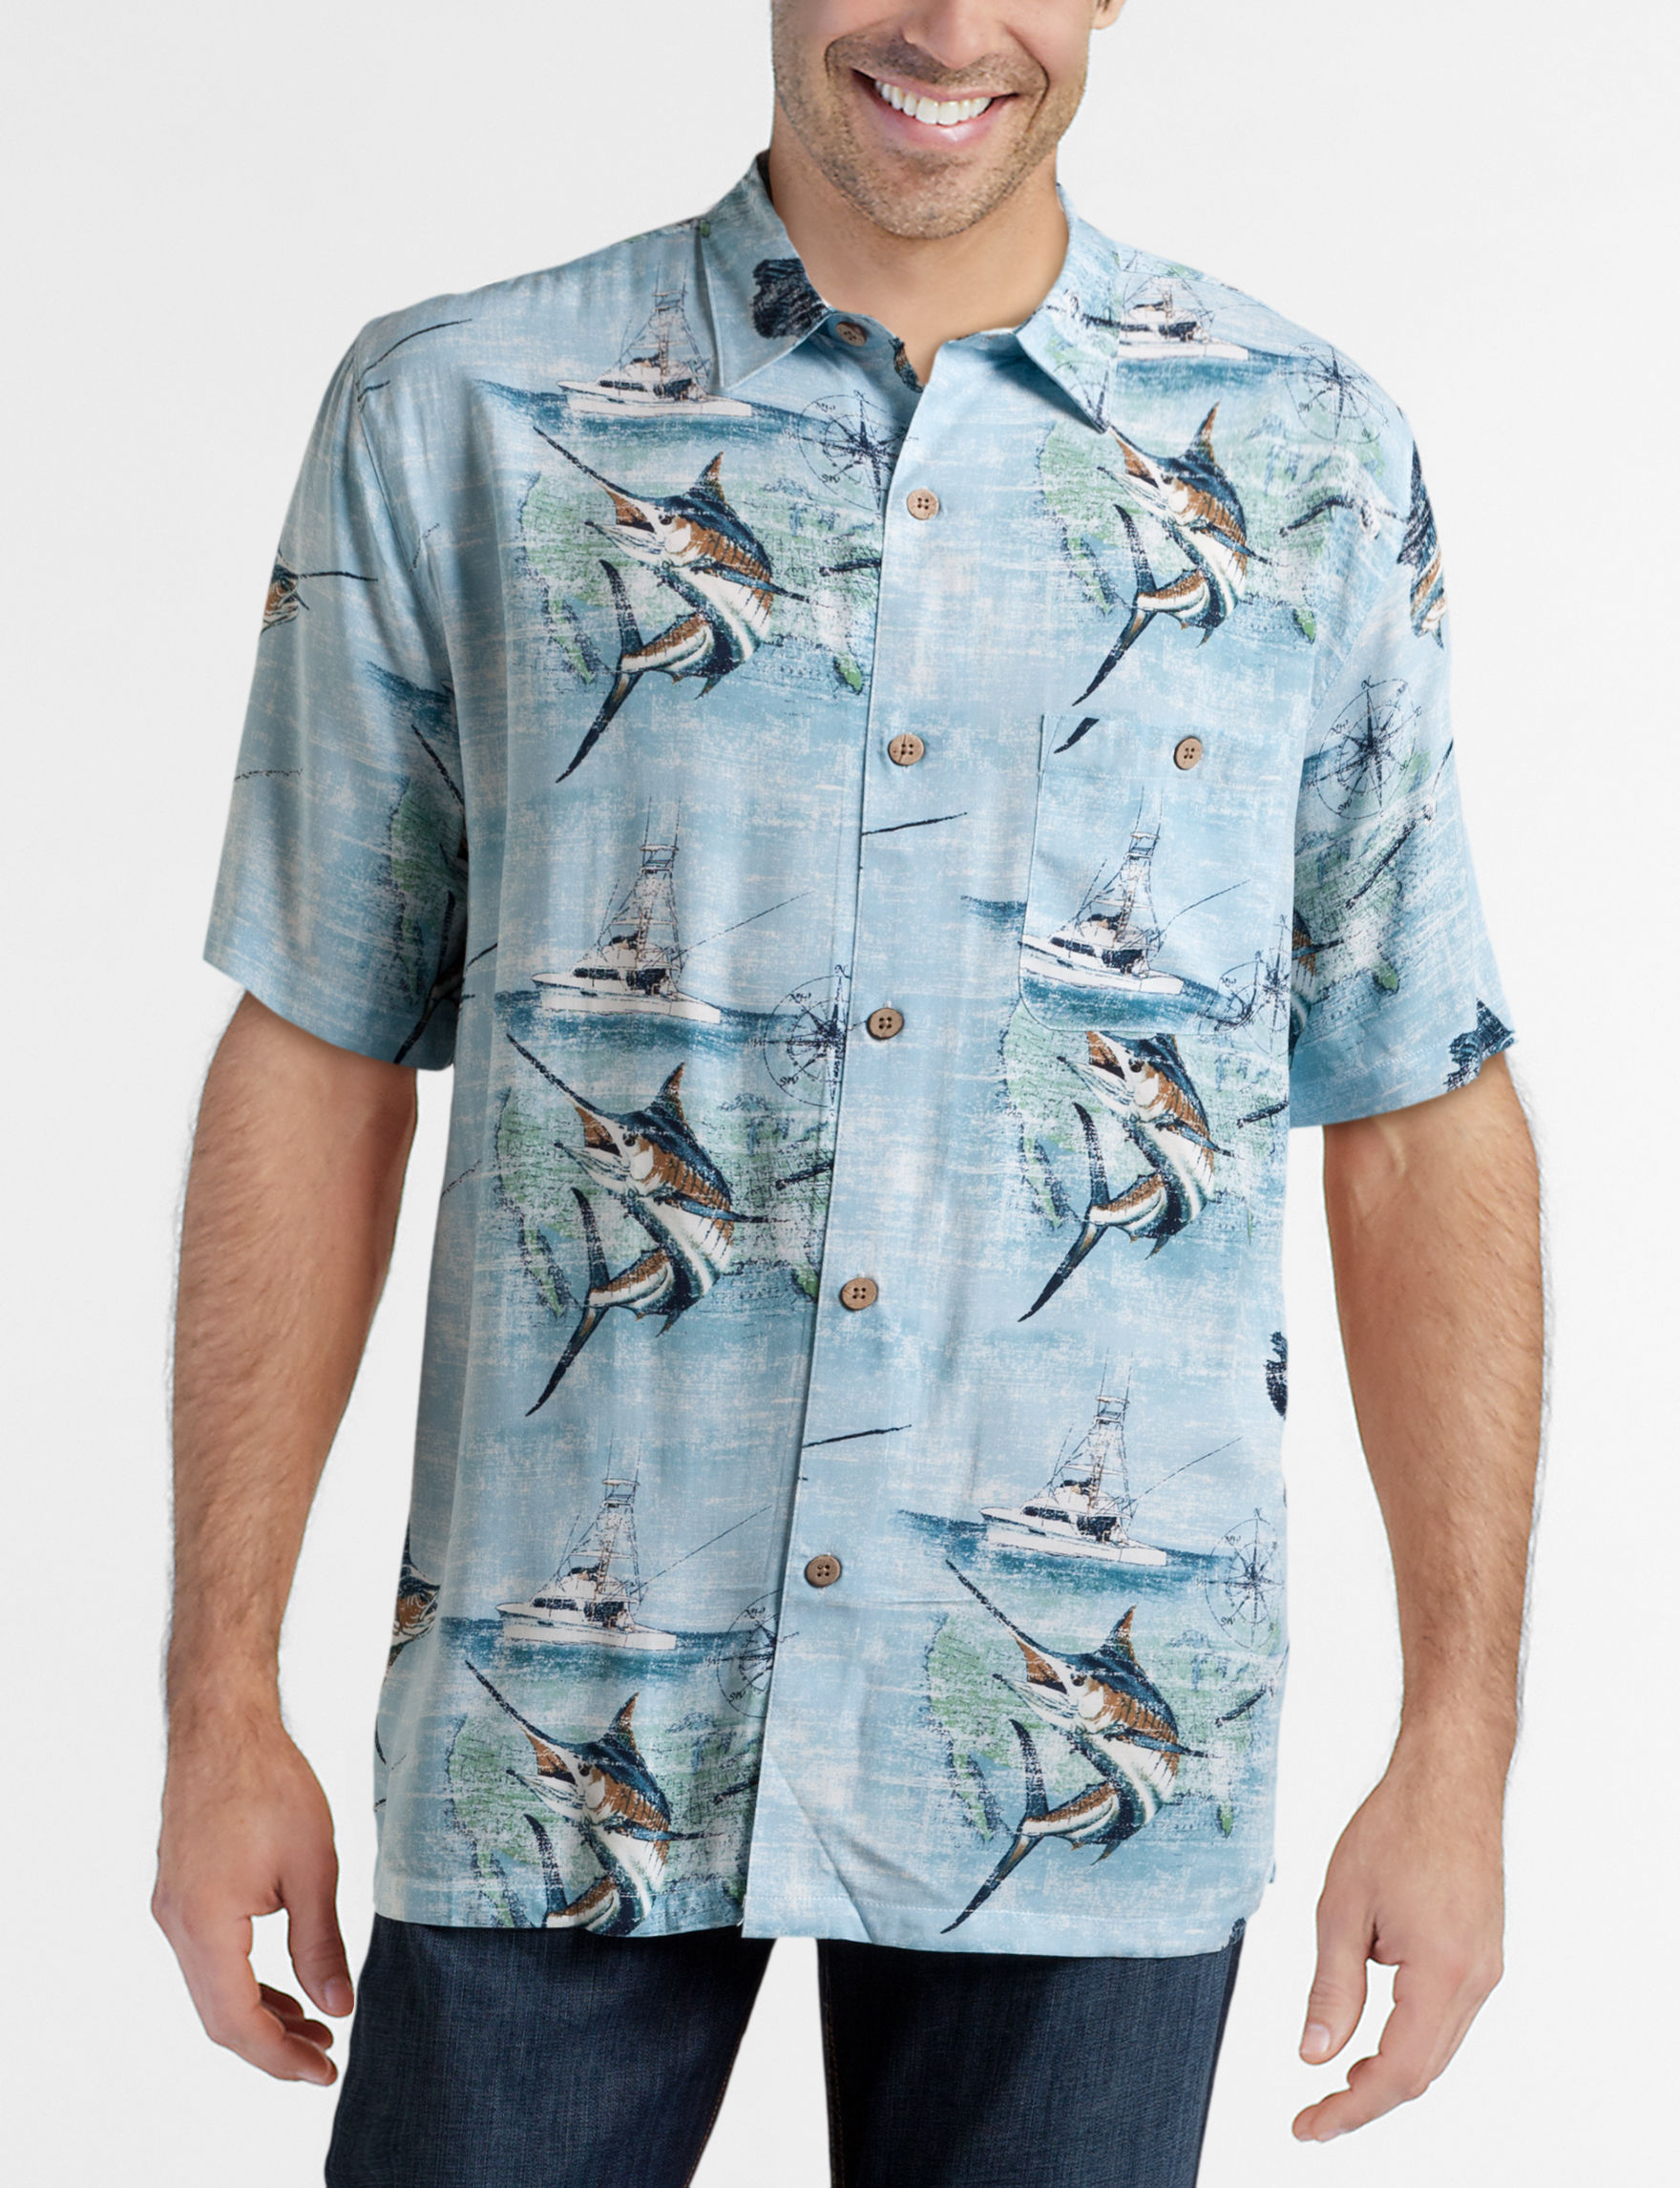 Joe Marlin Periwinkle Casual Button Down Shirts